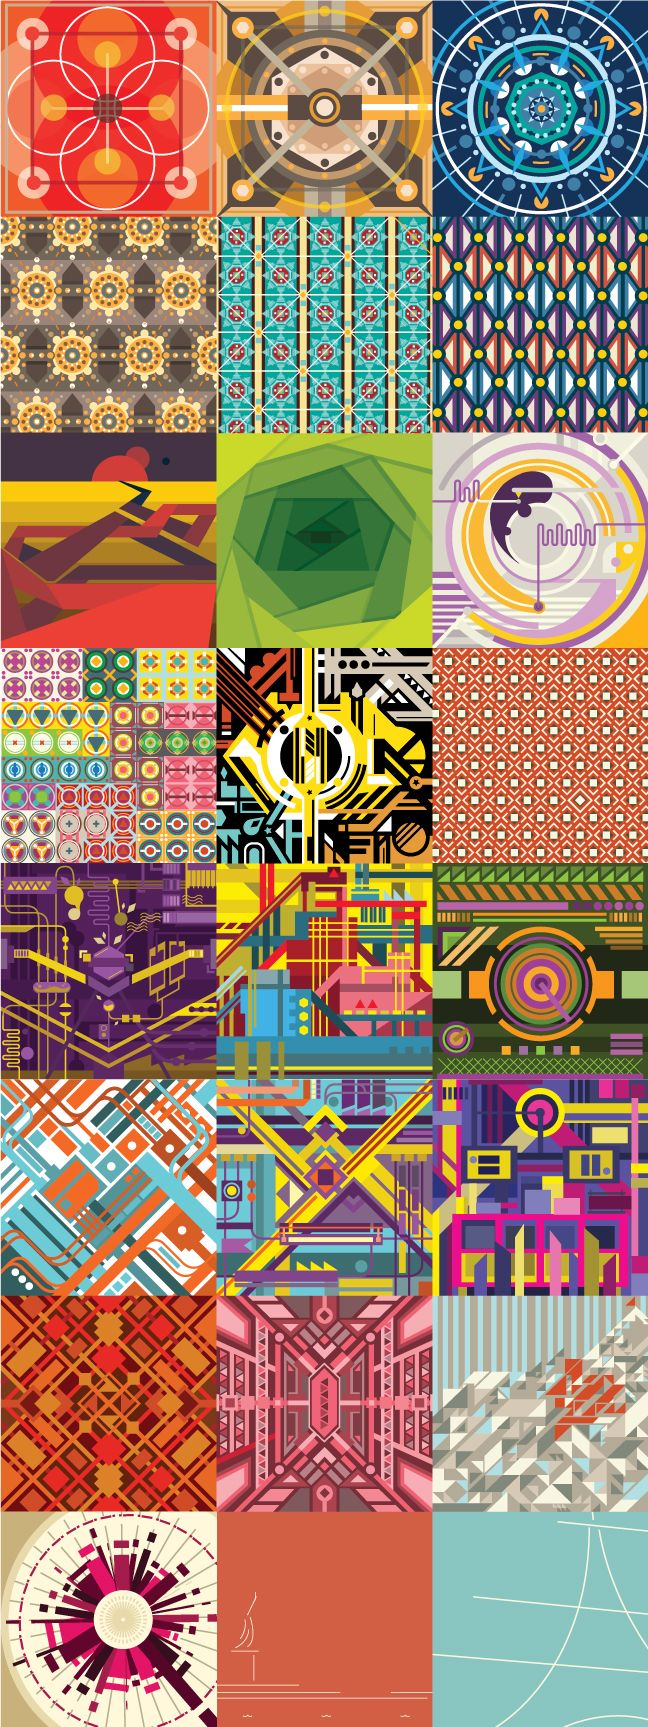 Various compositions illustrating different principles of design (symmetry, asymmetry, gestalt, etc.) and color schemes (analagous, complimentary, etc.)